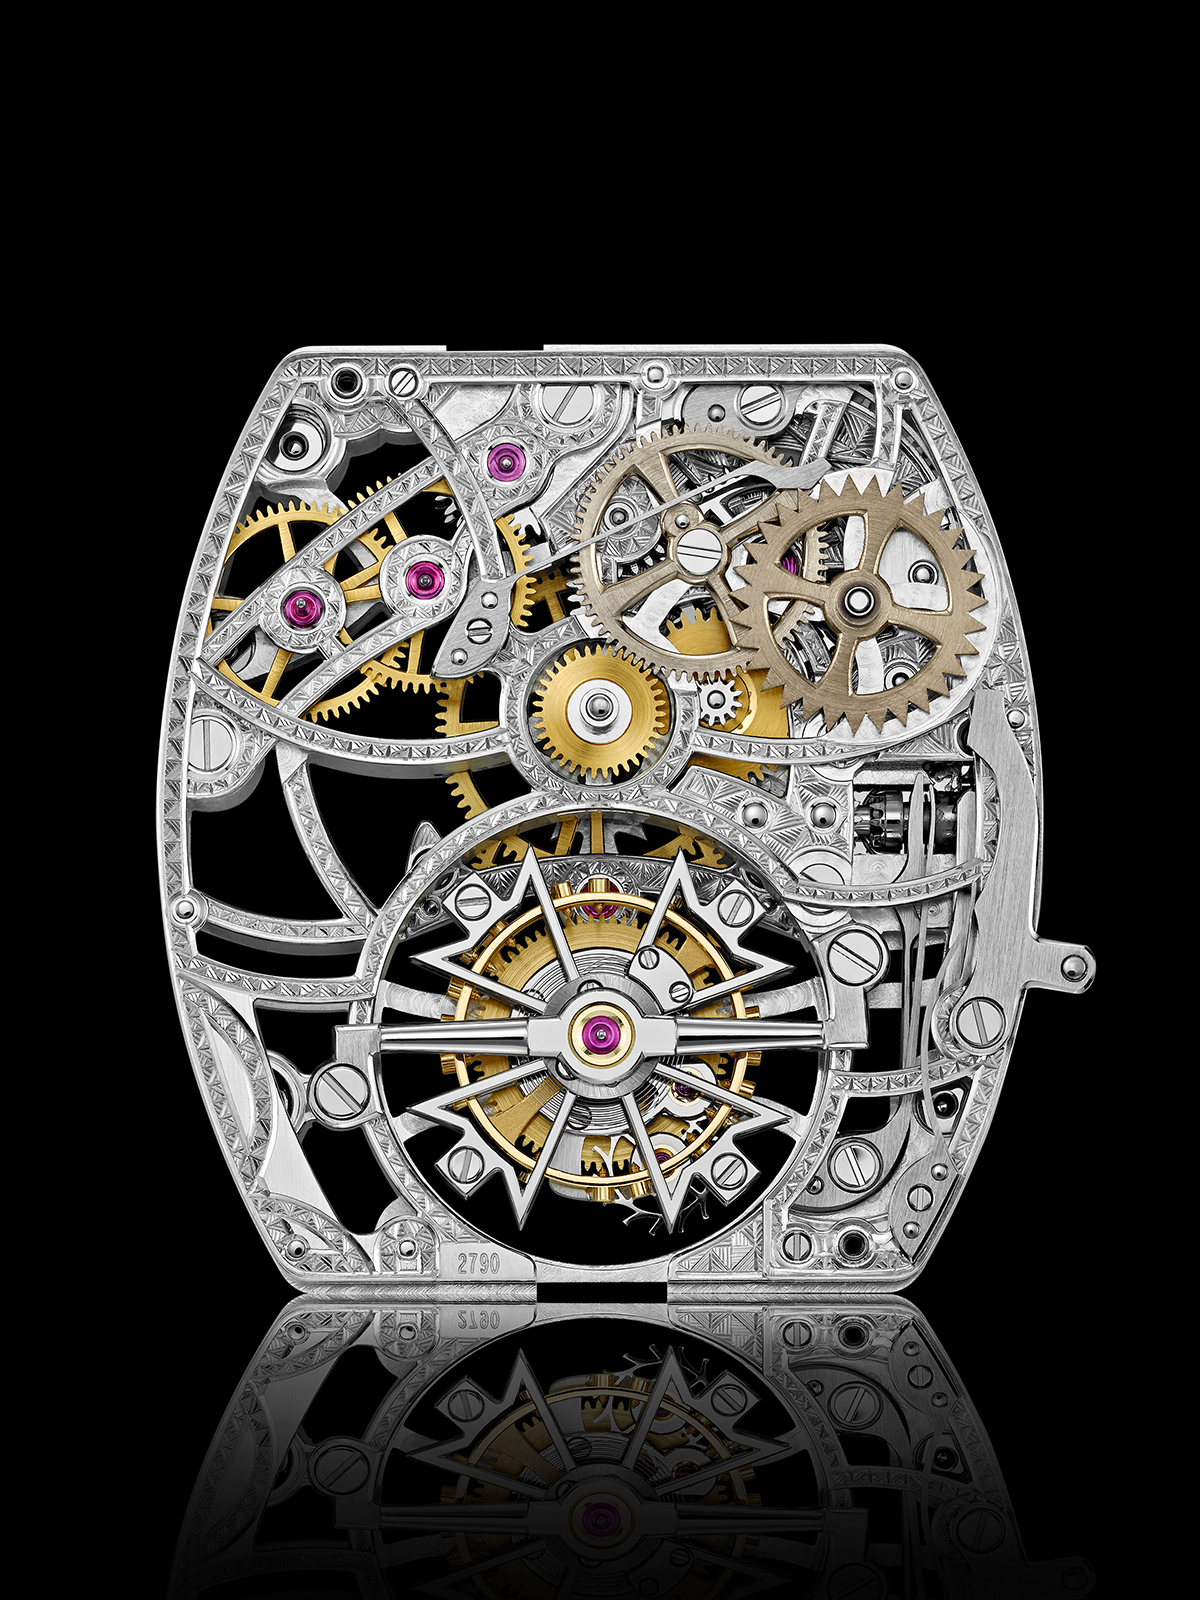 The Calibre 2790 SQ movement